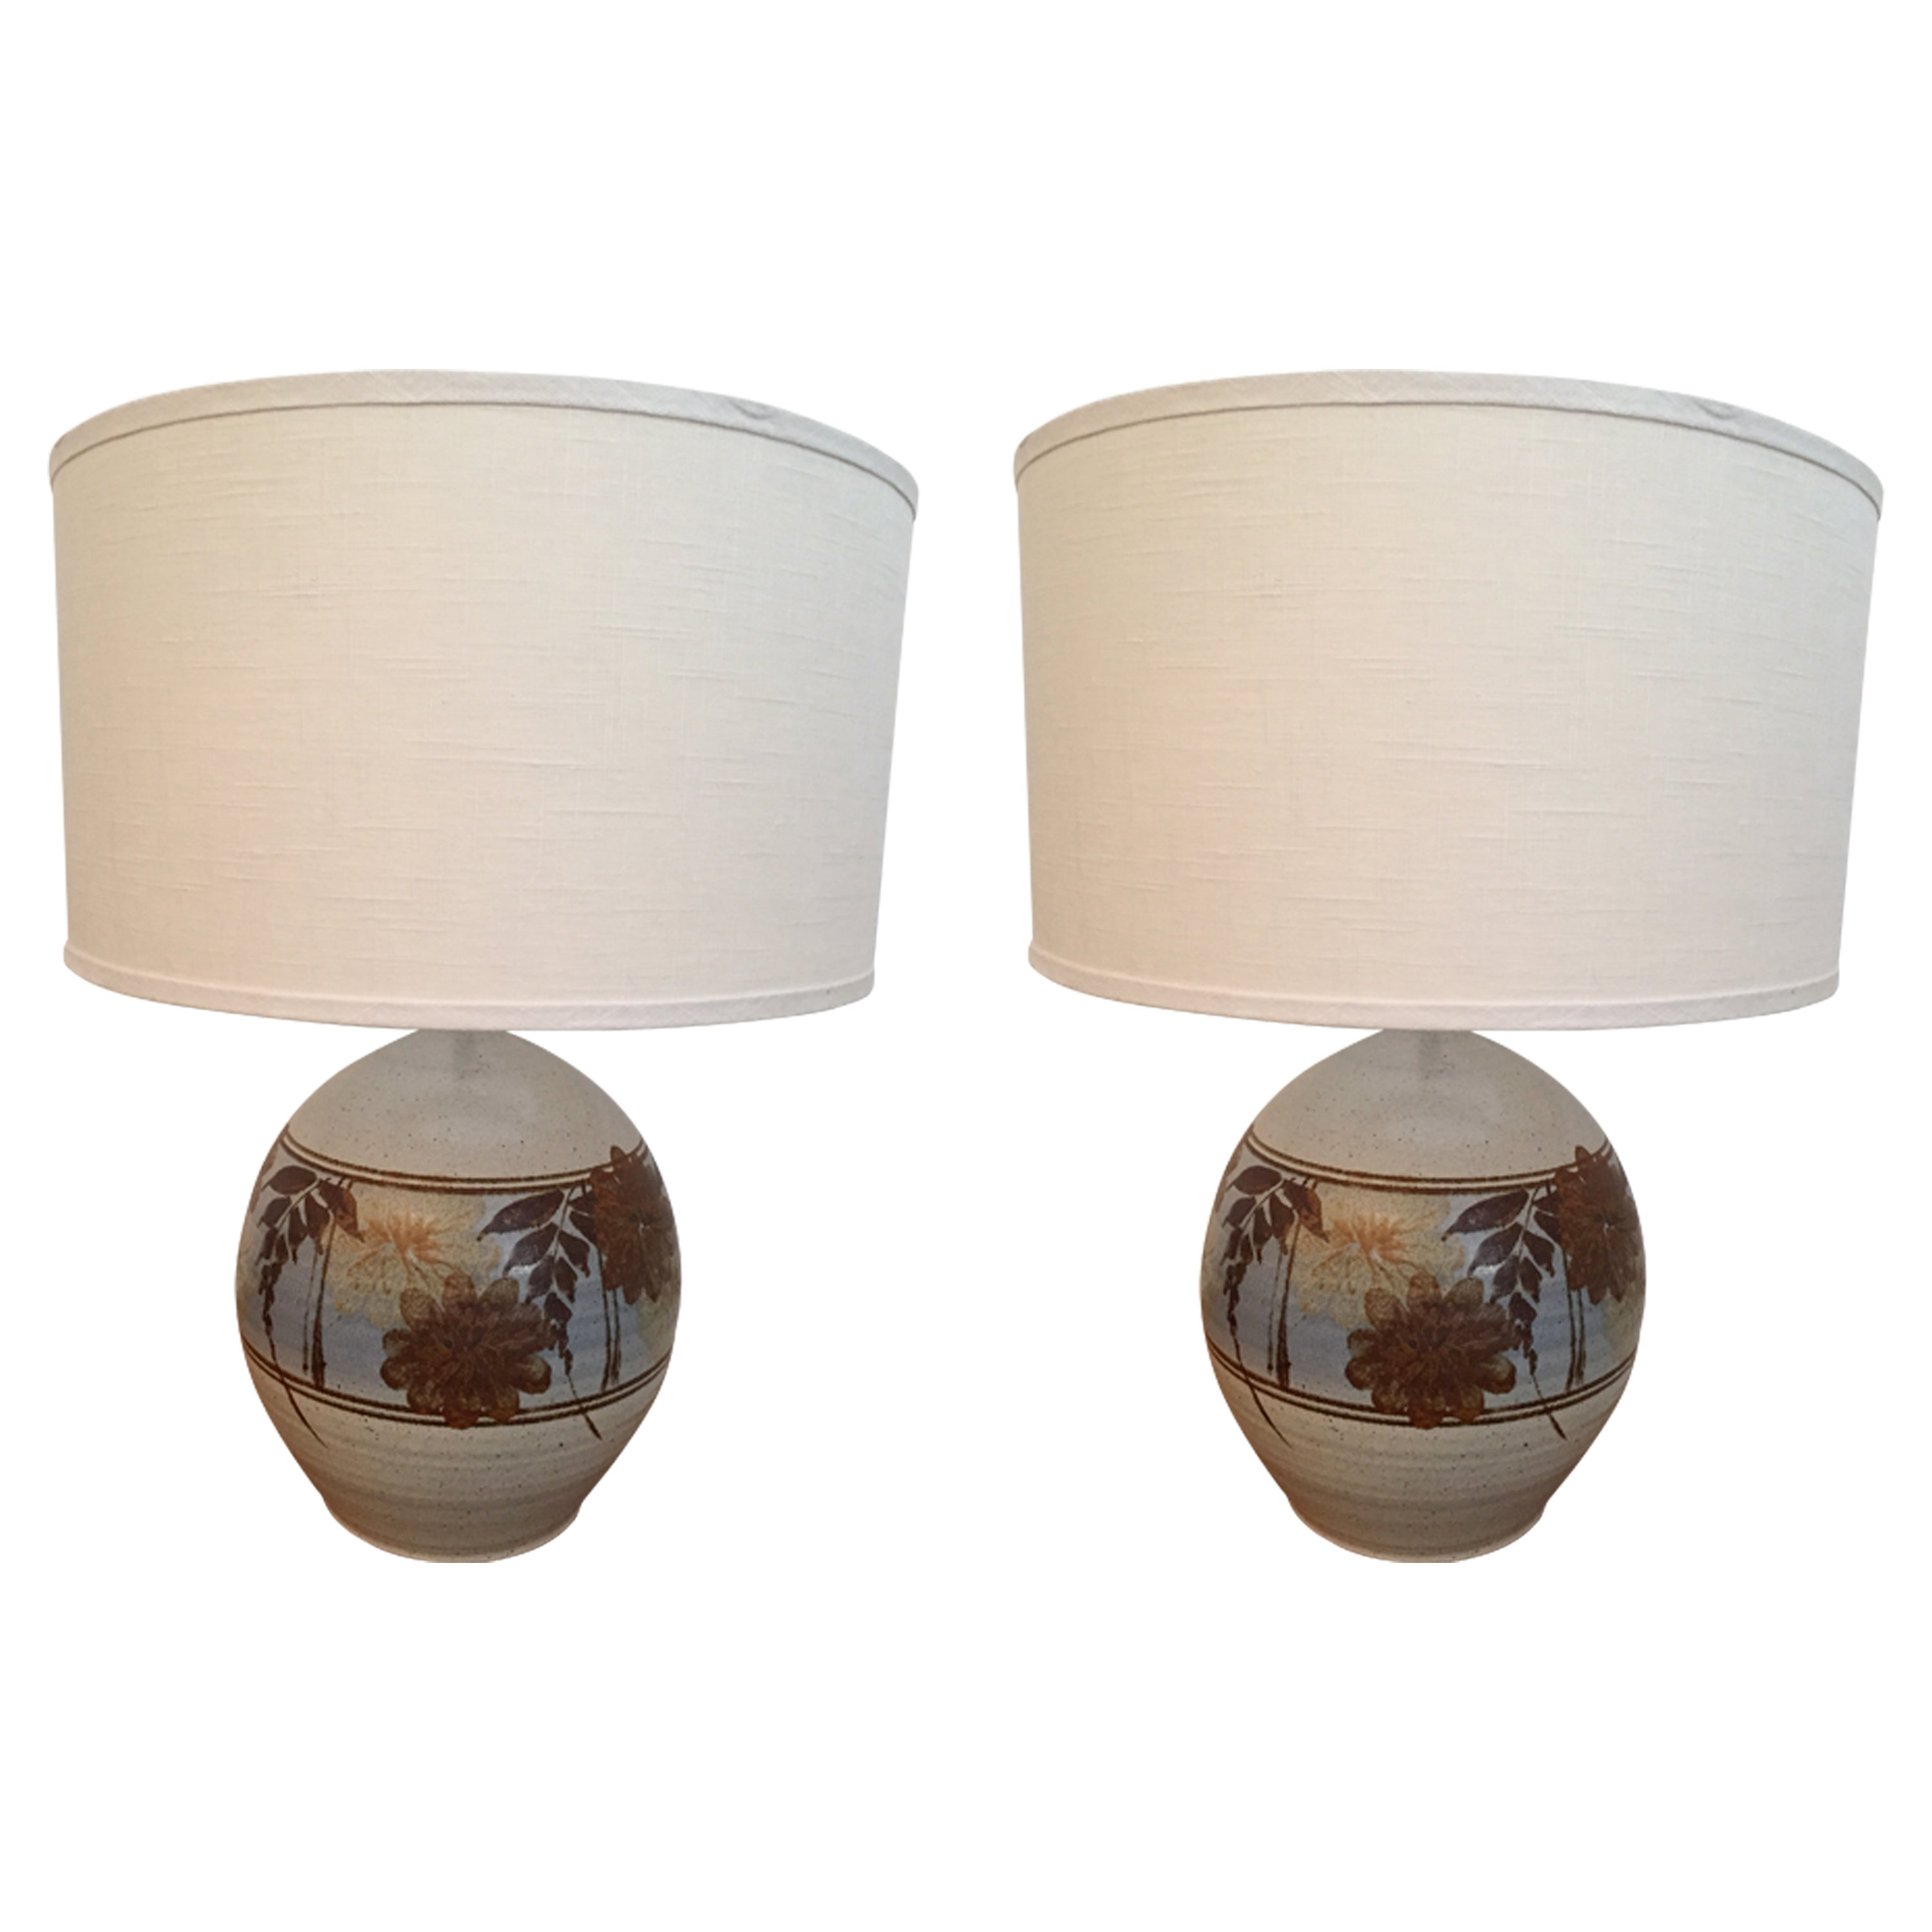 Pair of California Art Pottery 1970s Table Lamps